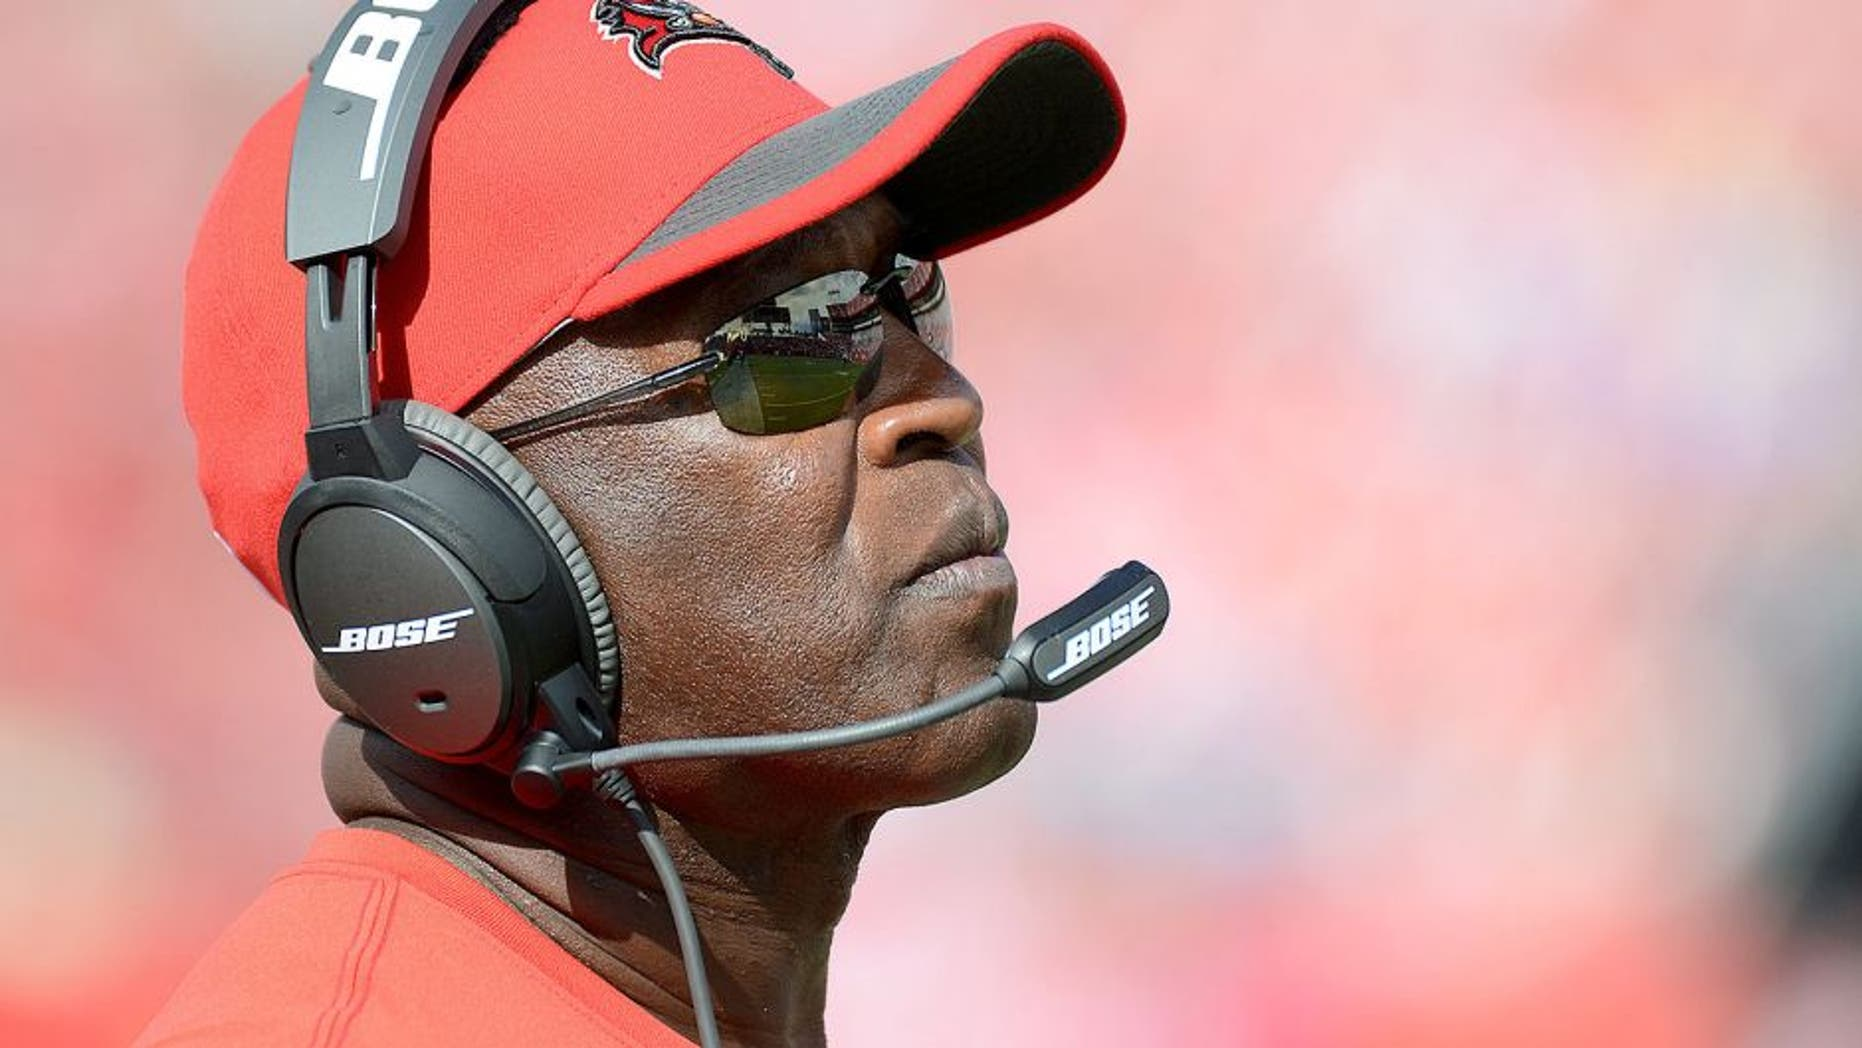 Oct 4, 2015; Tampa, FL, USA; Tampa Bay Buccaneers head coach Lovie Smith looks on in the second half against the Carolina Panthers at Raymond James Stadium. The Carolina Panthers defeated the Tampa Bay Buccaneers 37-23. Mandatory Credit: Jonathan Dyer-USA TODAY Sports